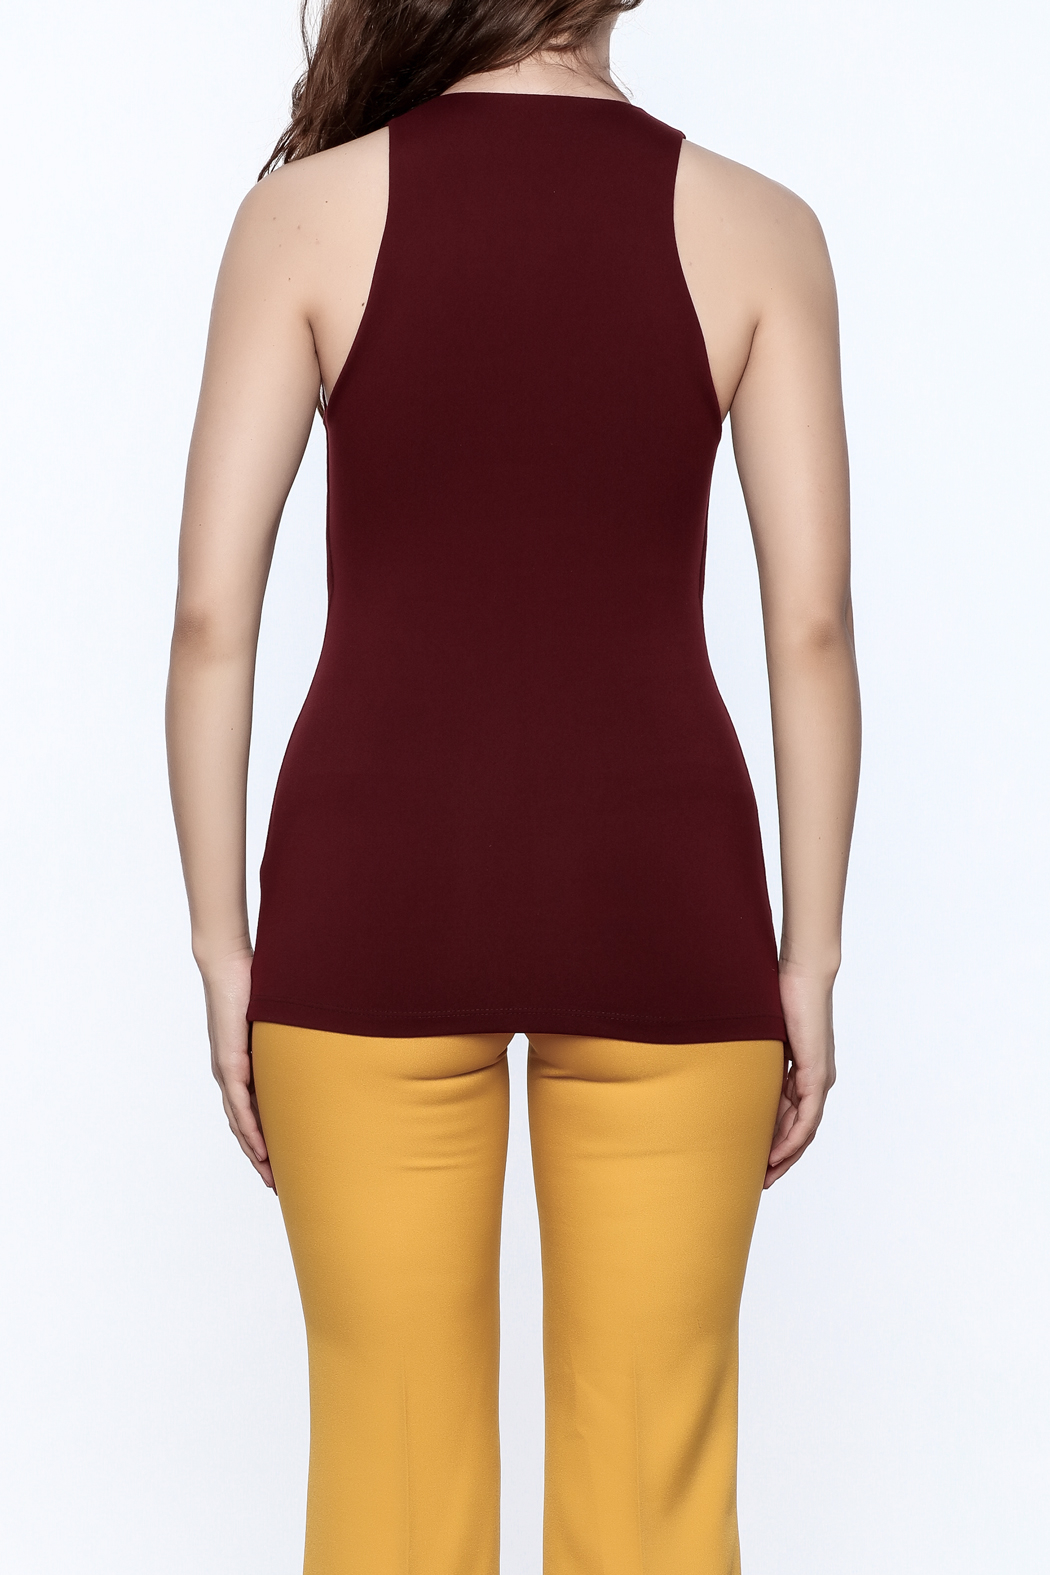 Susana Monaco Urban Tank Top - Back Cropped Image